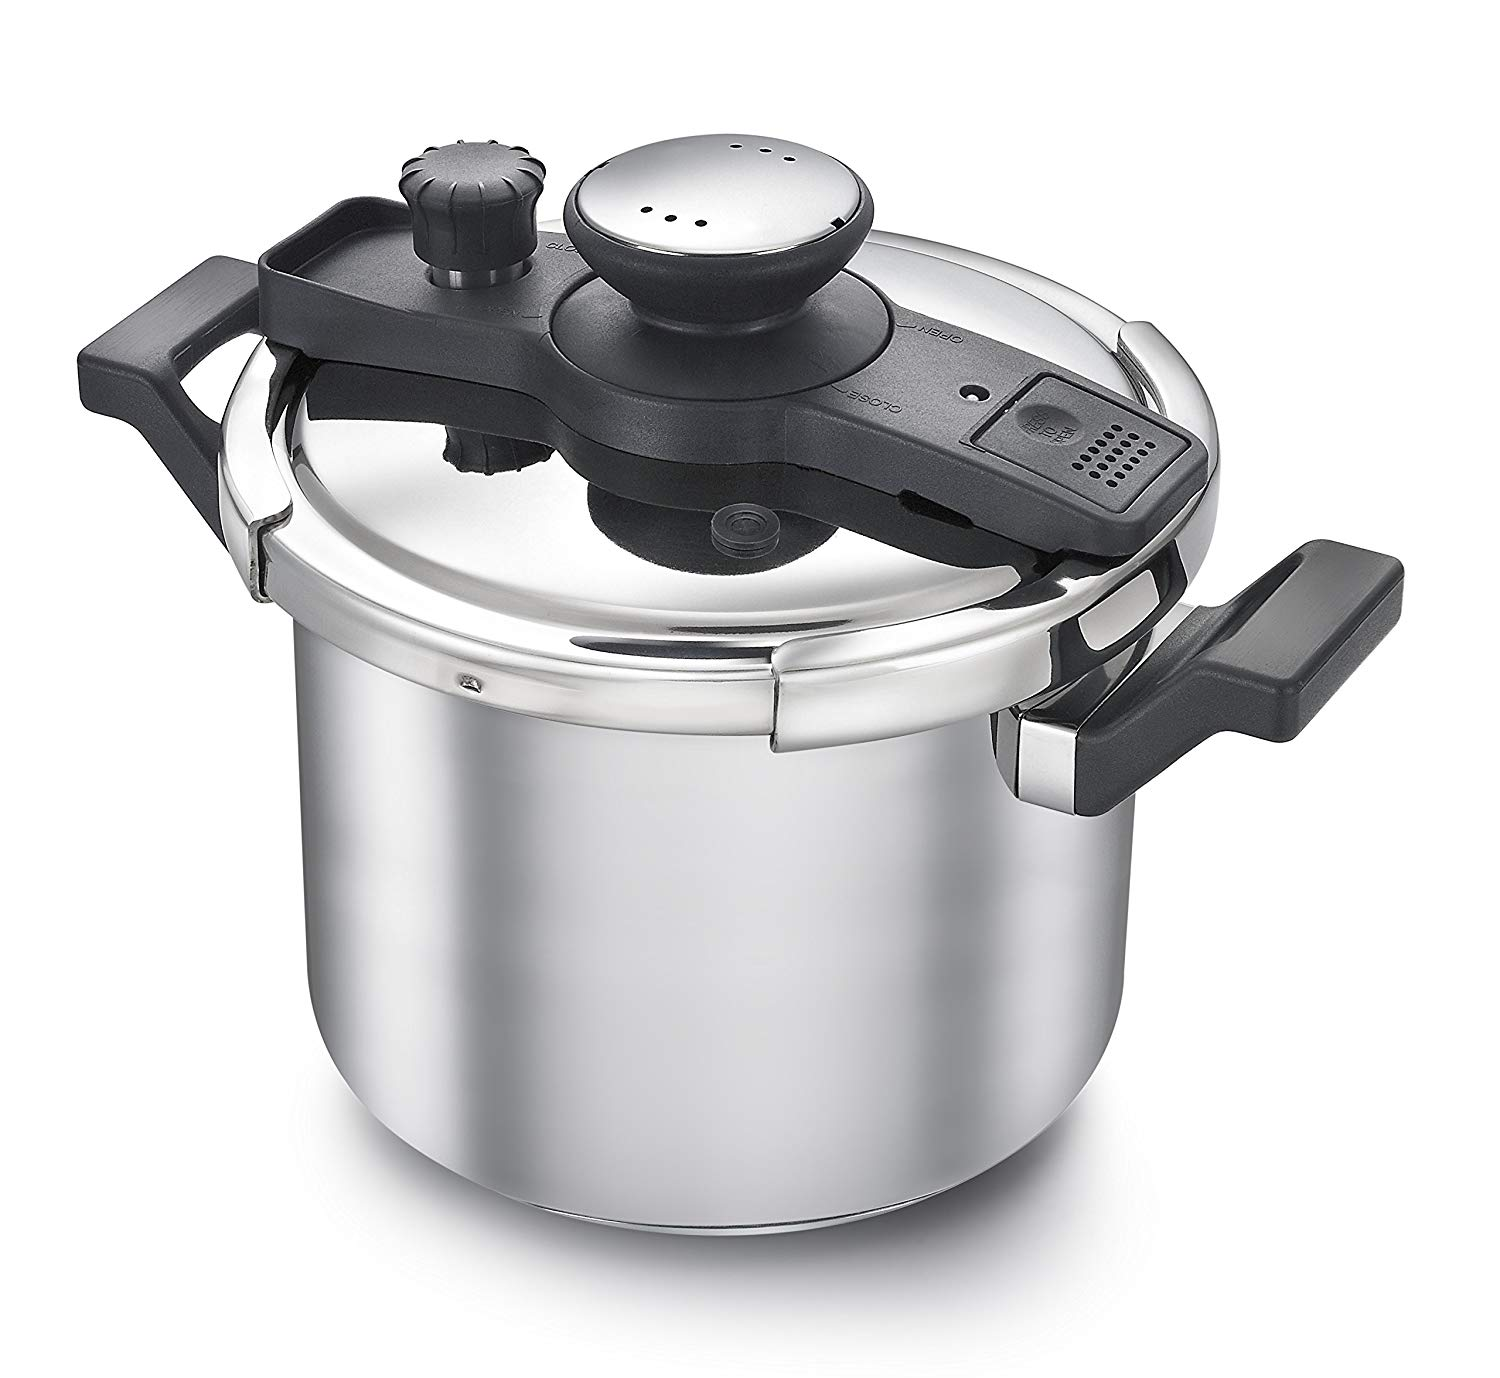 7371e8fa1cf Get Quotations · Prestige Clip-on Pressure Cooker Stainless Steel Cook And  Serve Pot